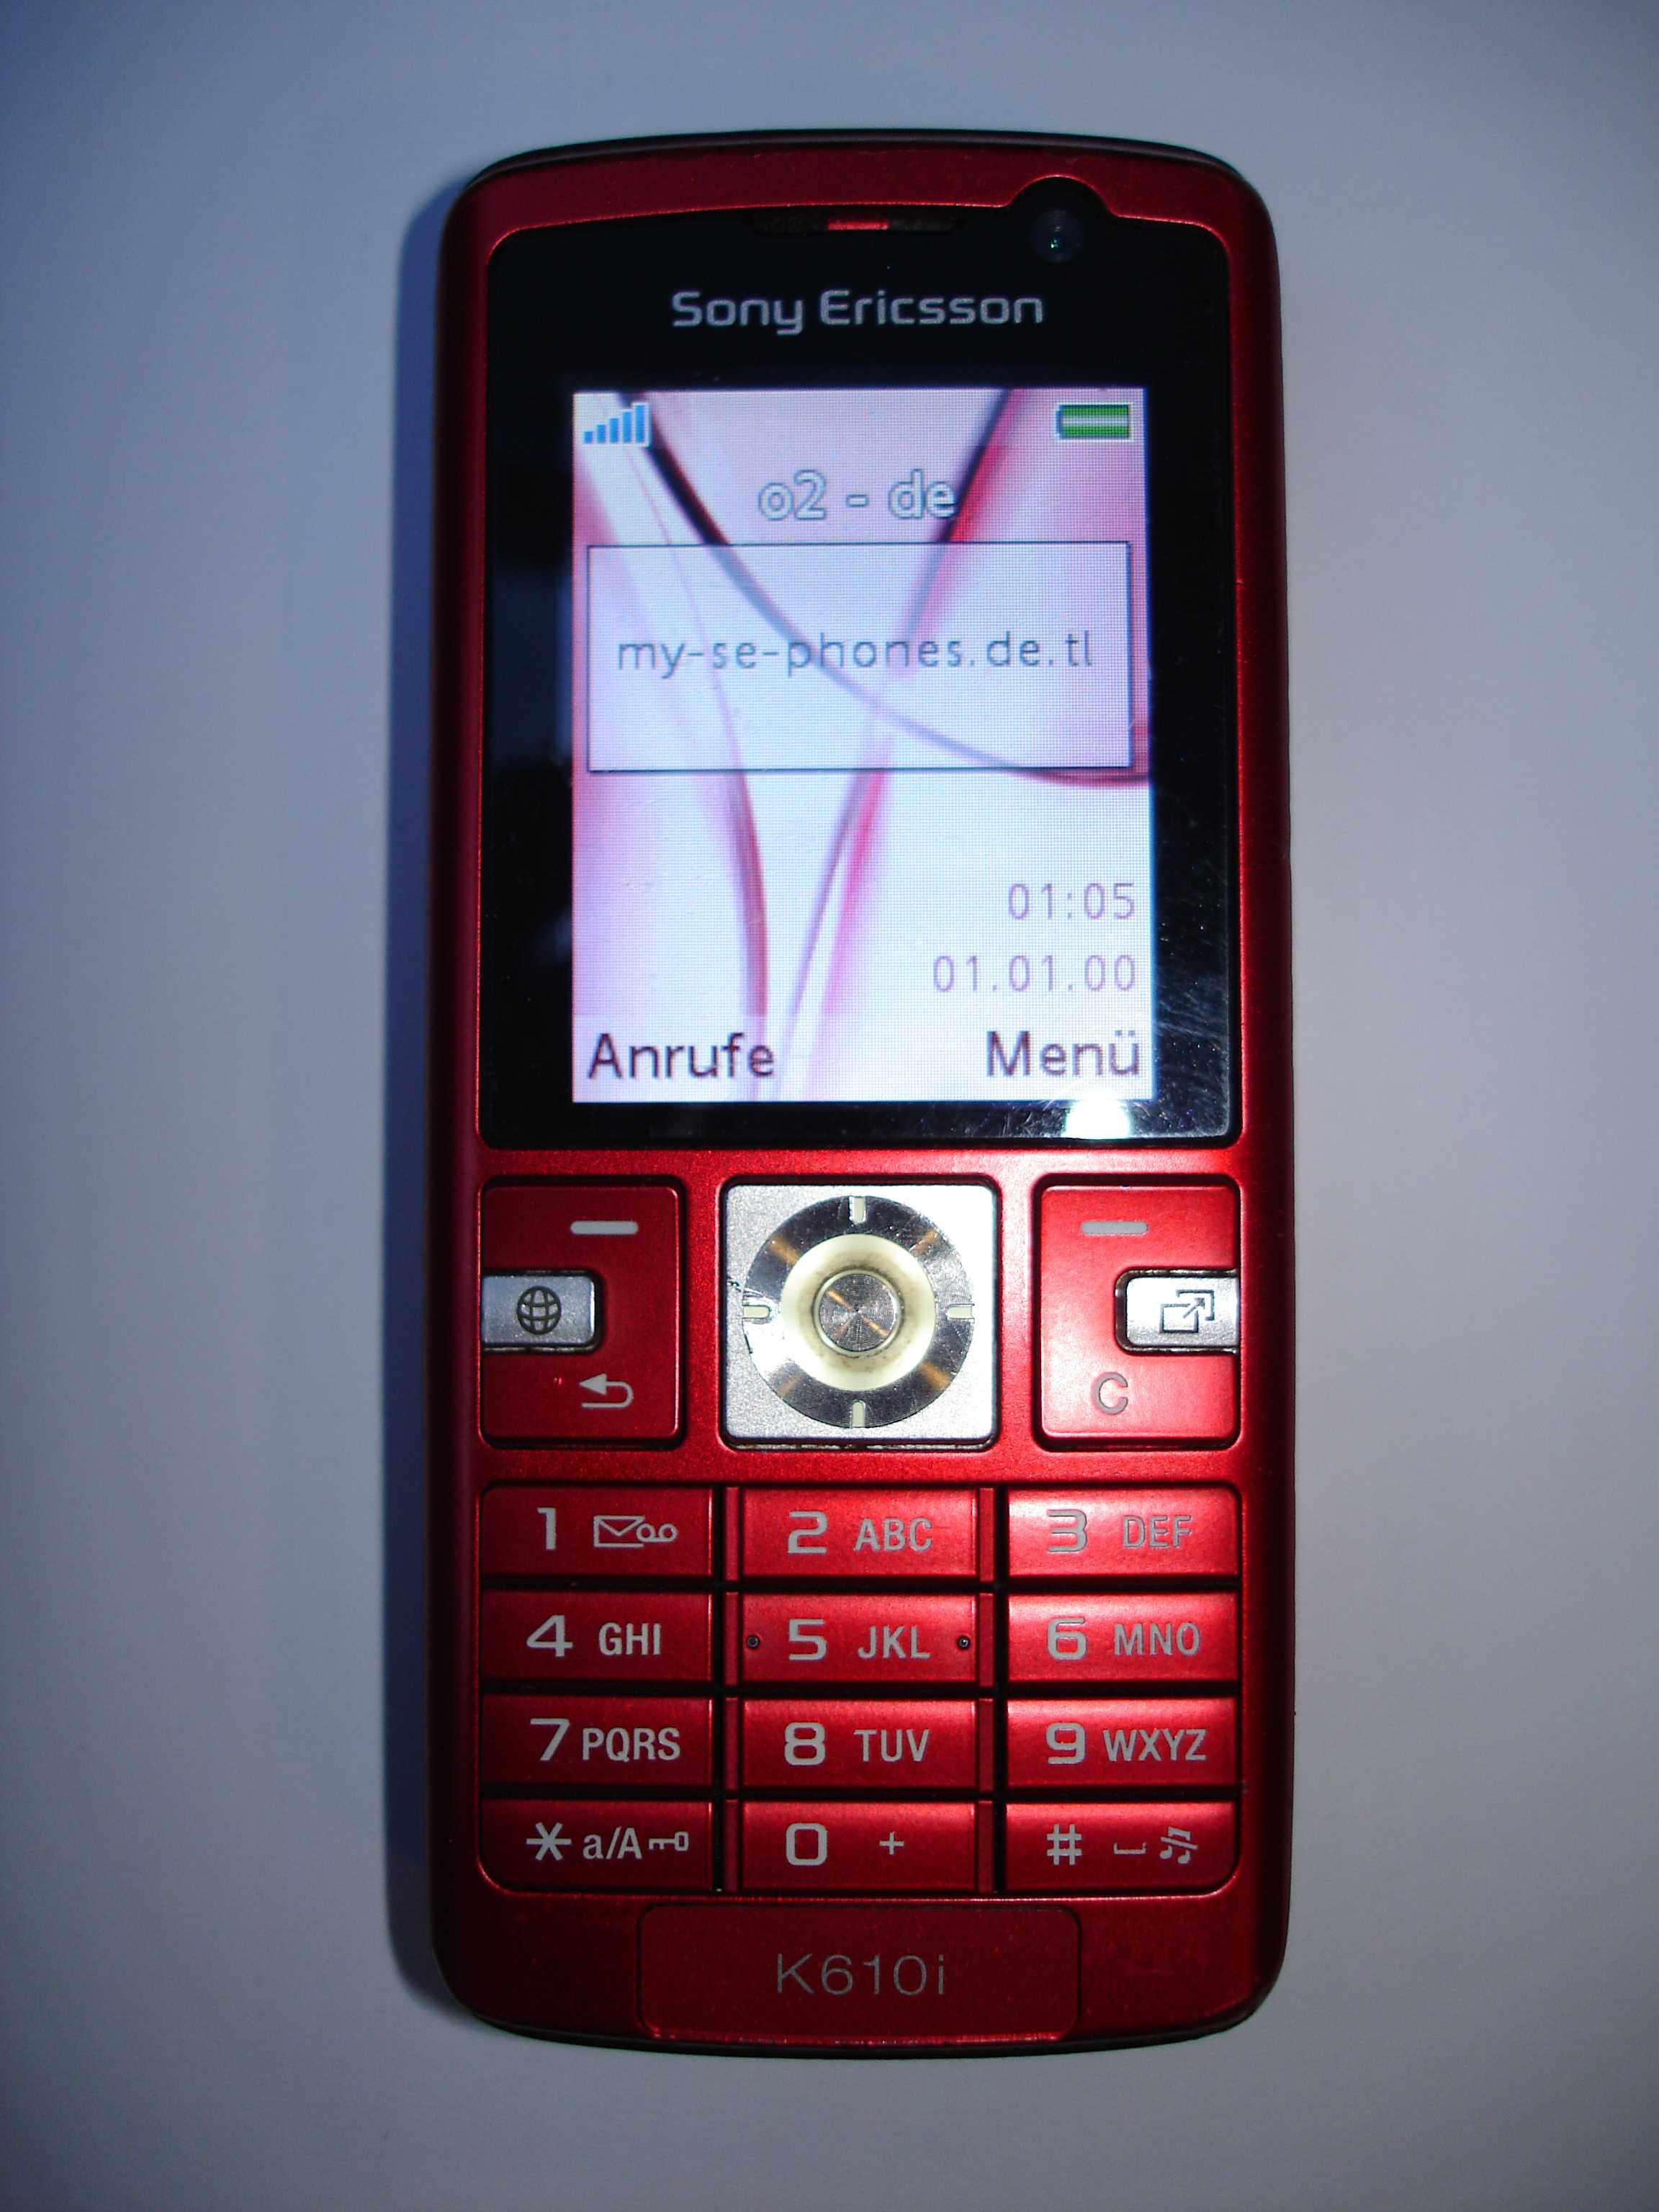 Today in london, sony ericsson announced their 3g